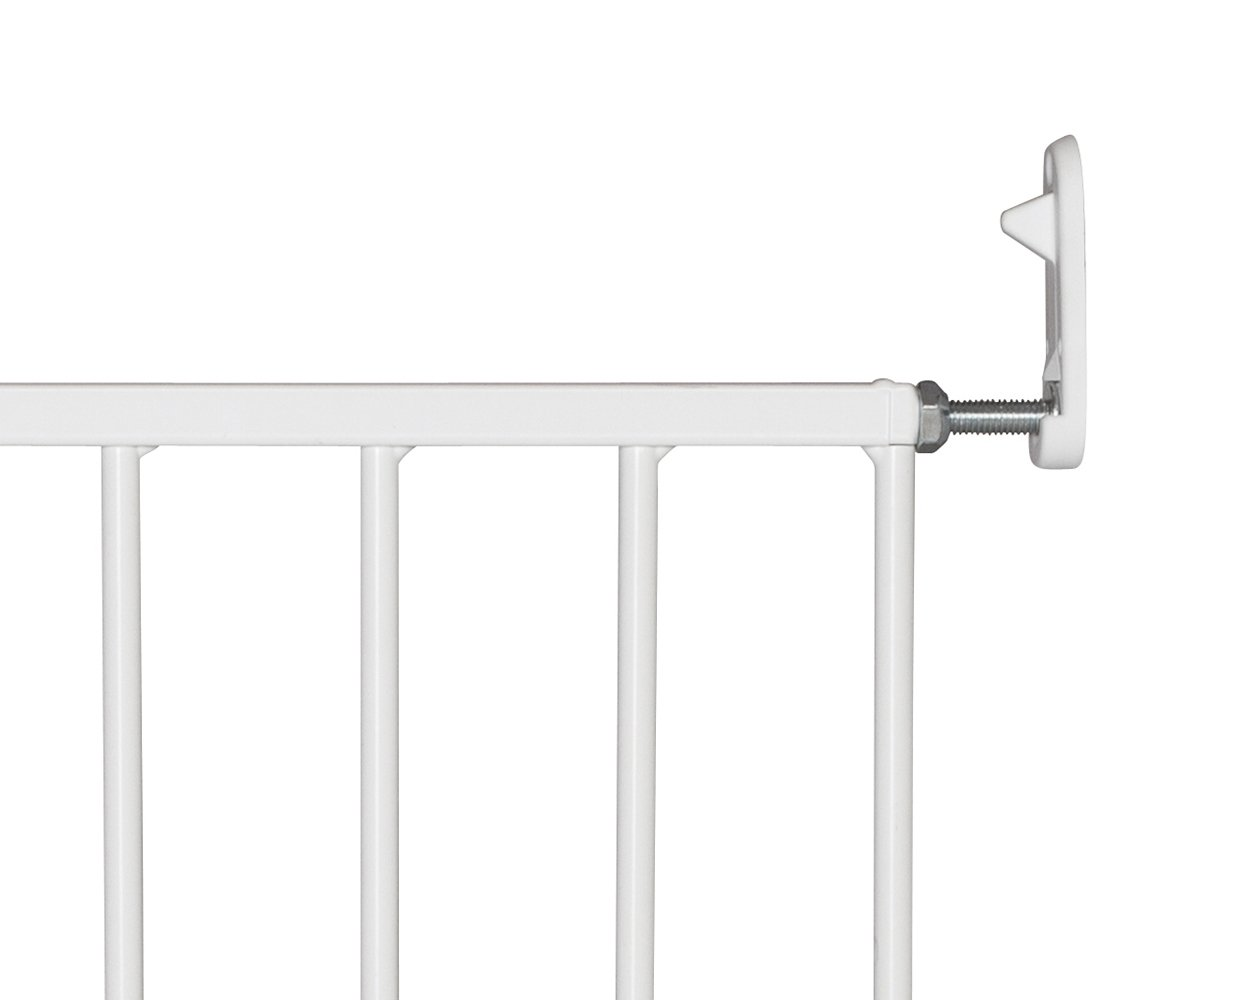 BabyDan No Trip Screw Mounted Safety Gate, White